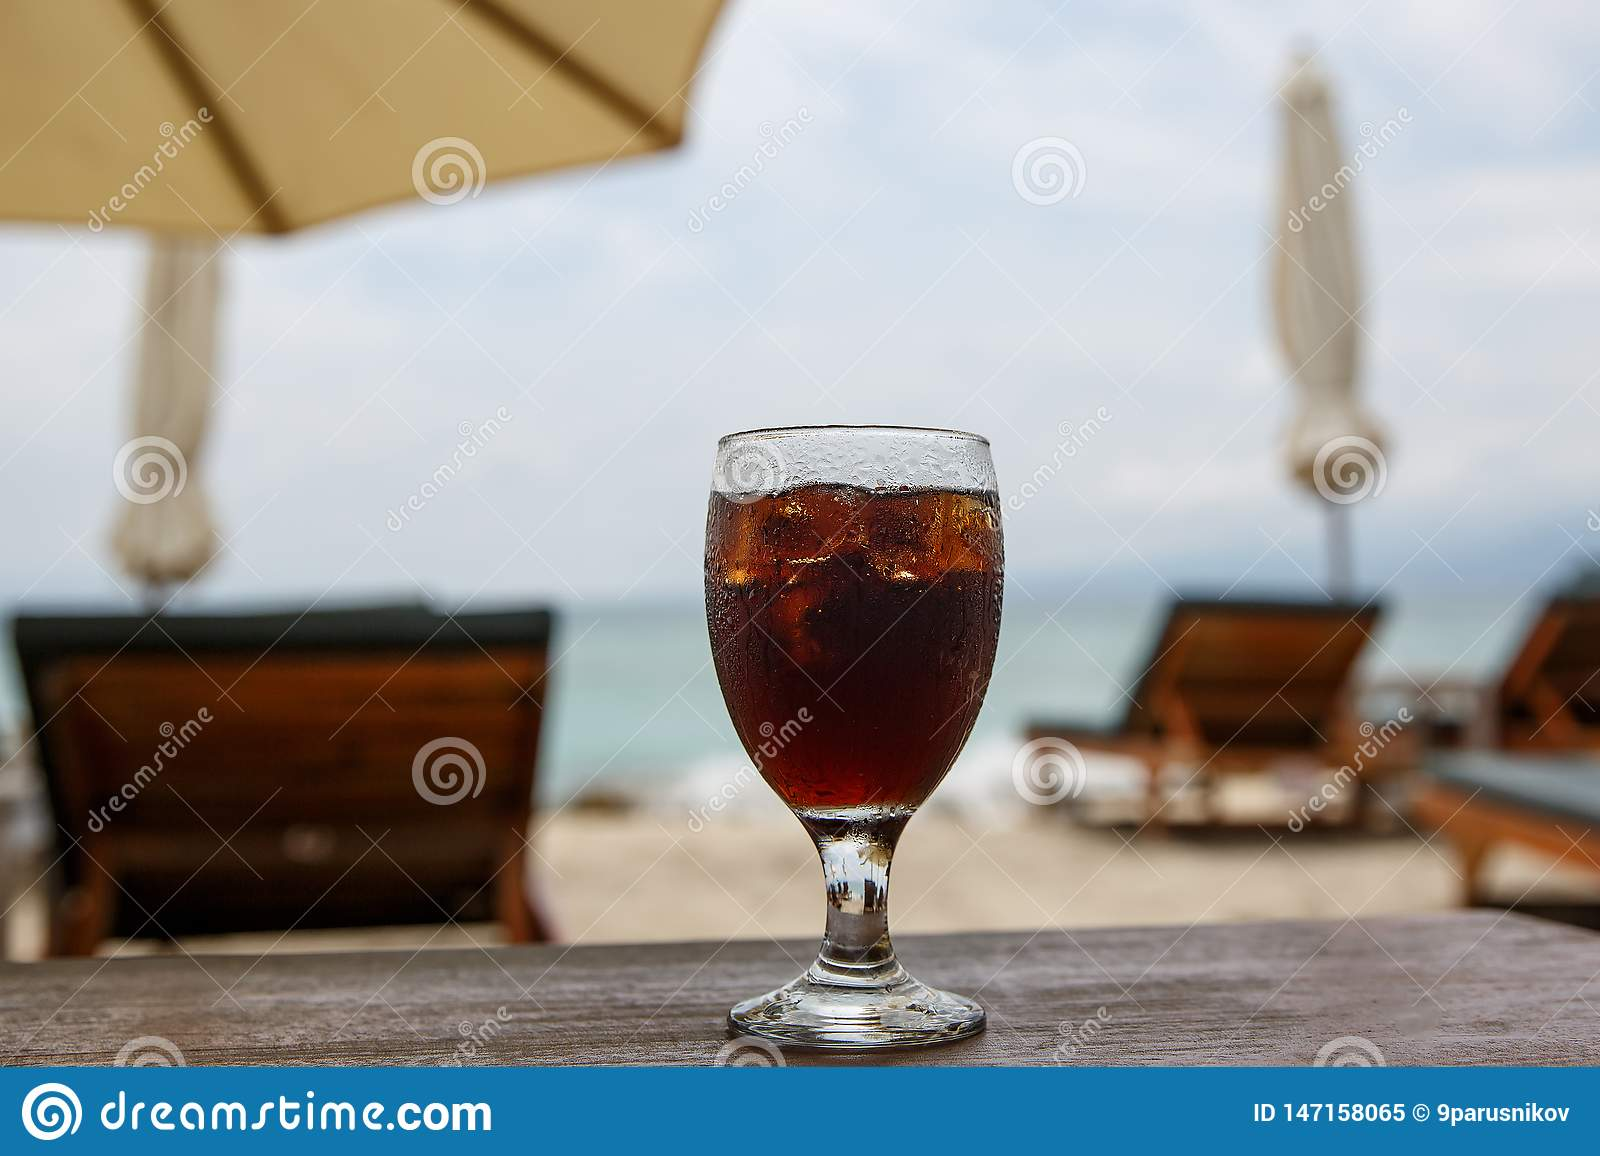 Cola glass on beach with umbrellas. Cooling drink